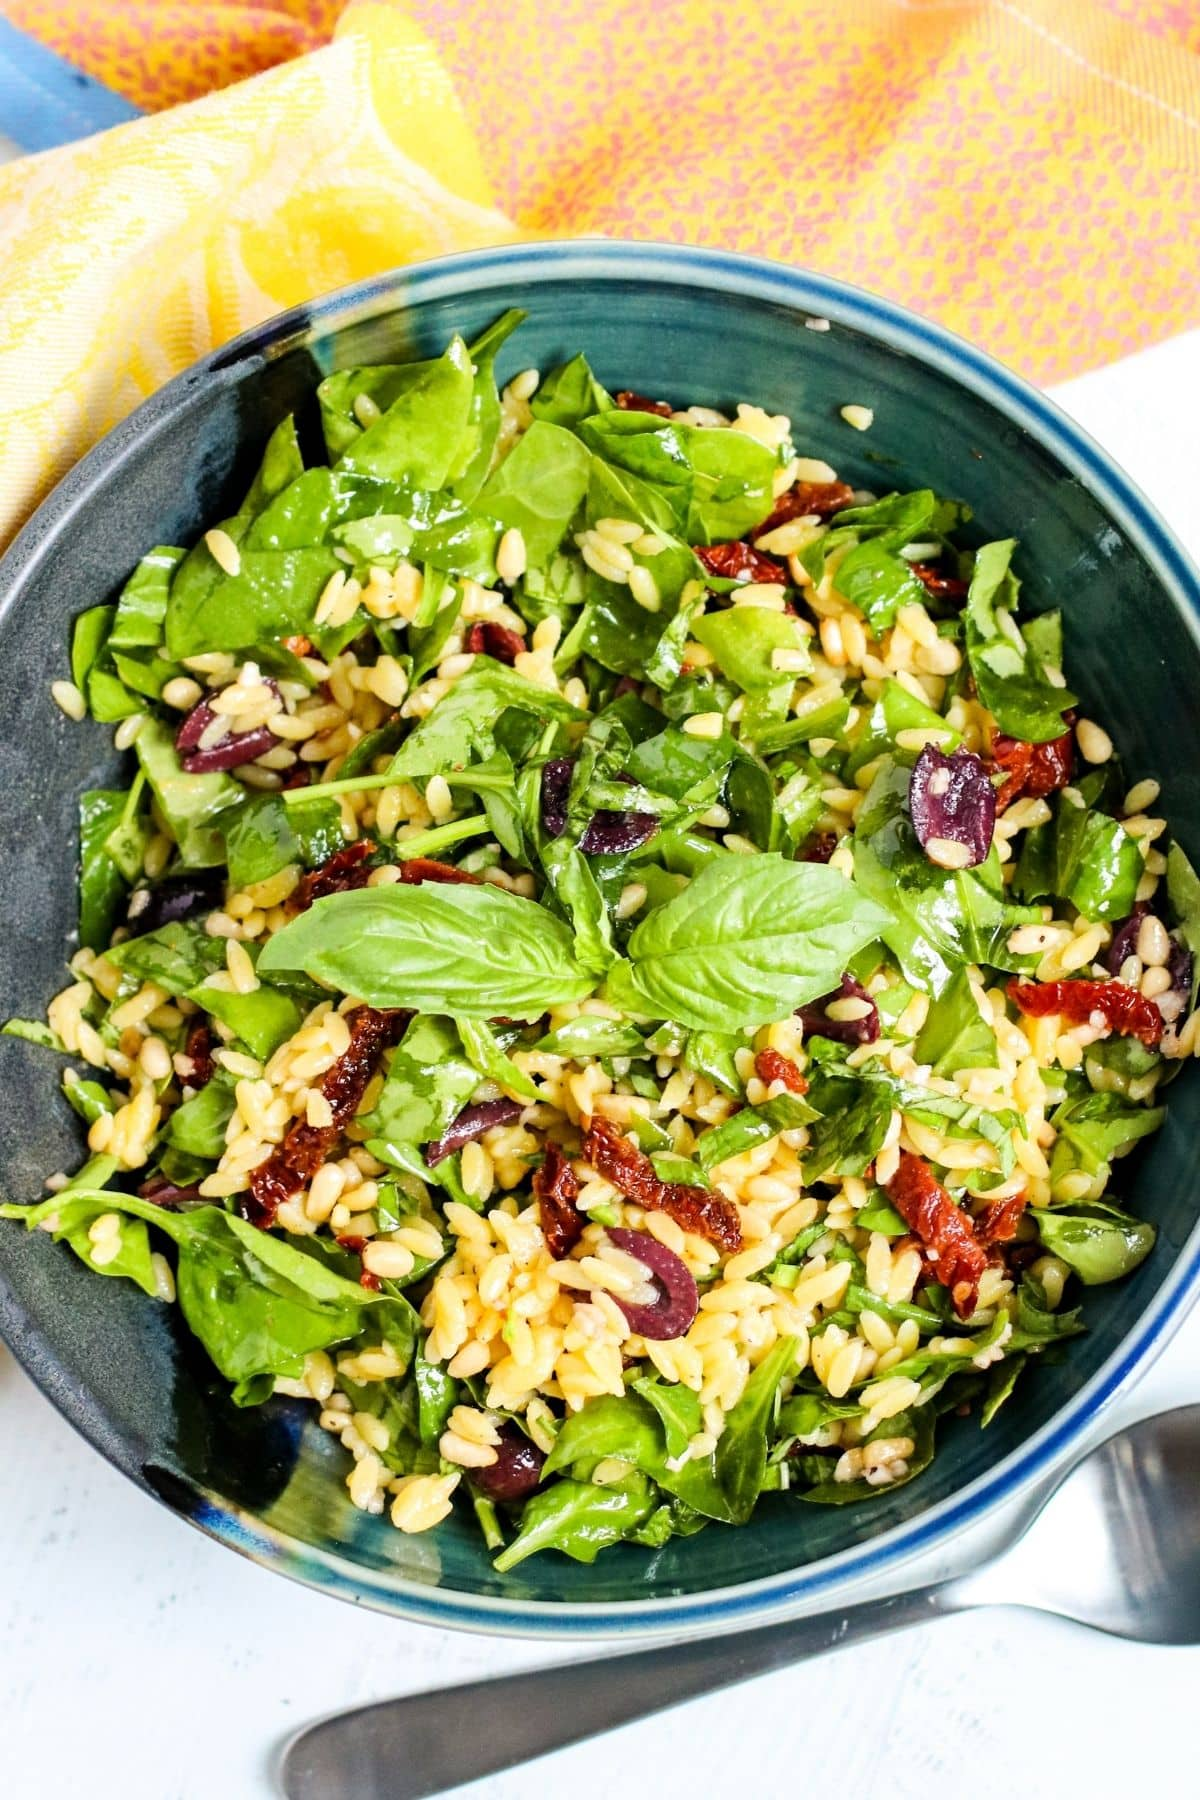 Bowl of spinach orzo salad with serving spoon